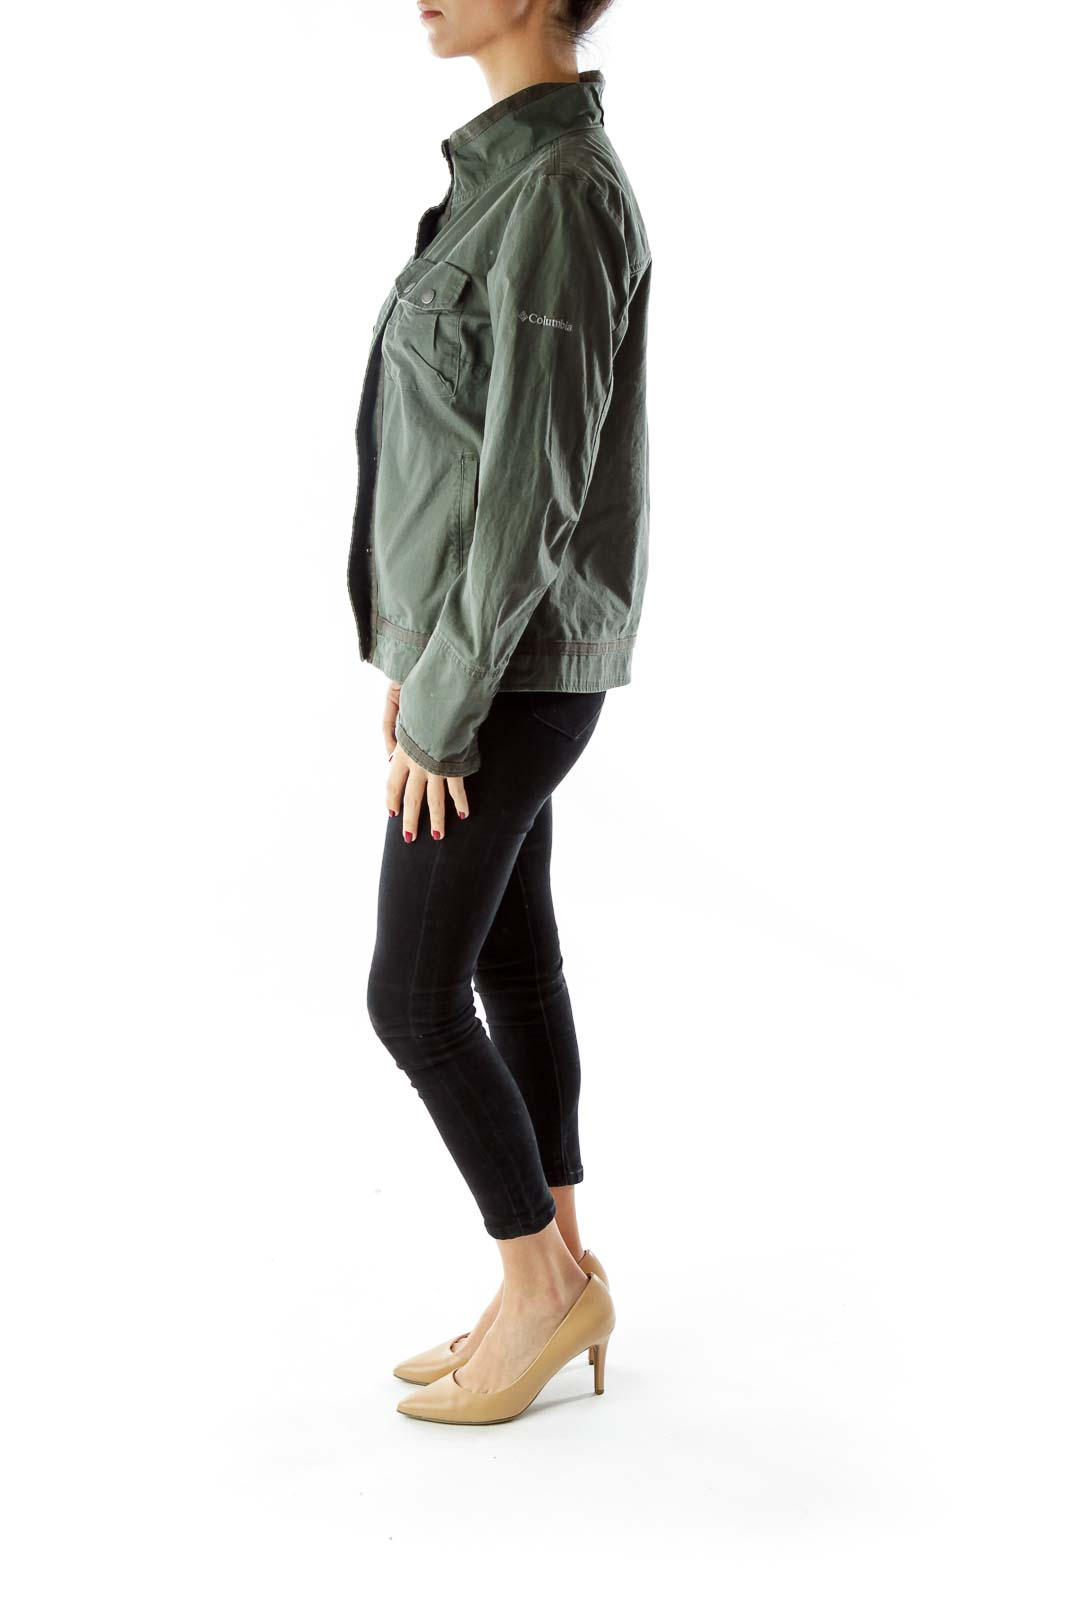 Green Pocketed Buttoned Fitted Jacket